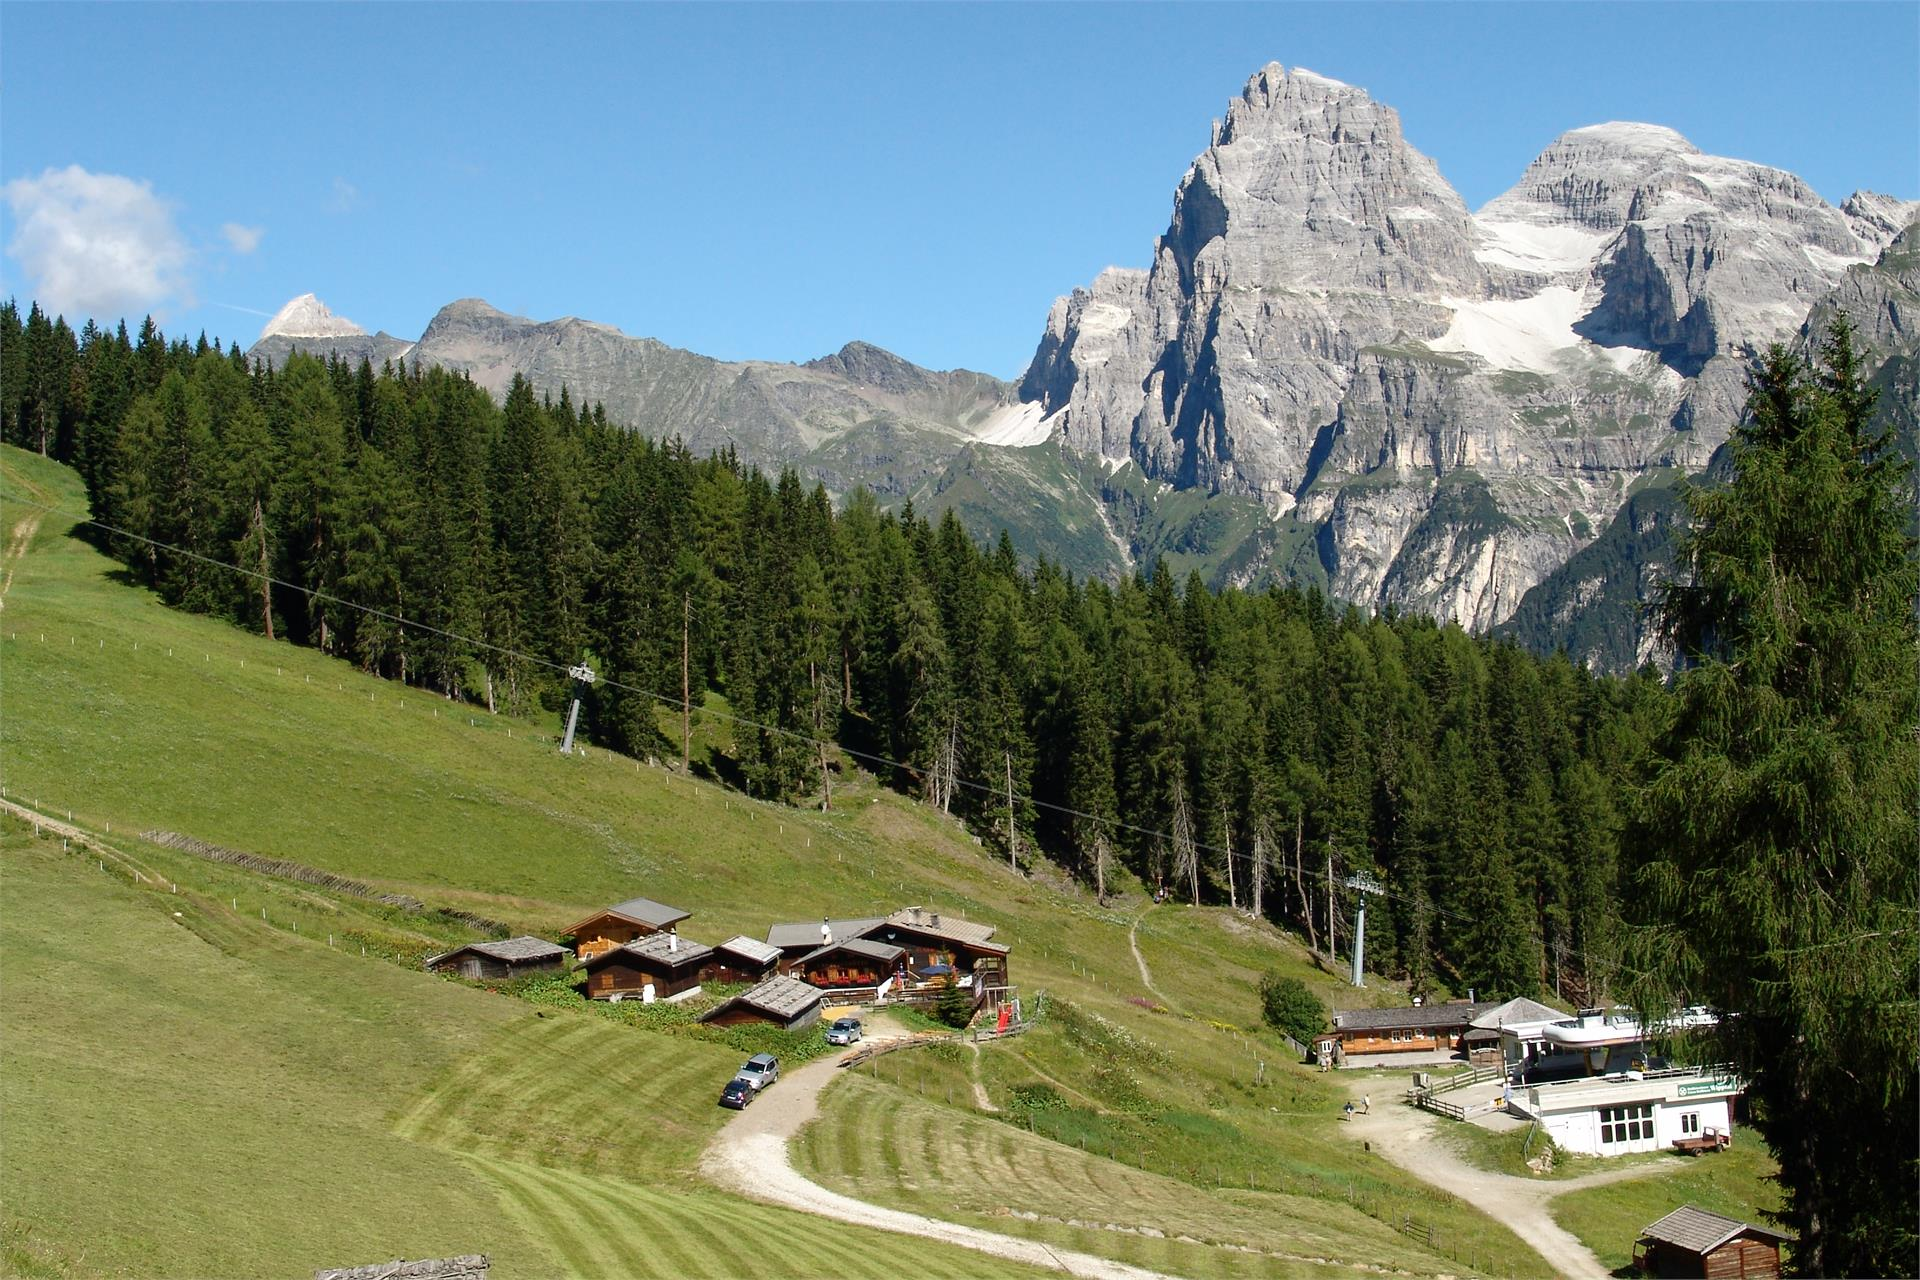 Lotterscharte>Vallming-Alm>Ladurns